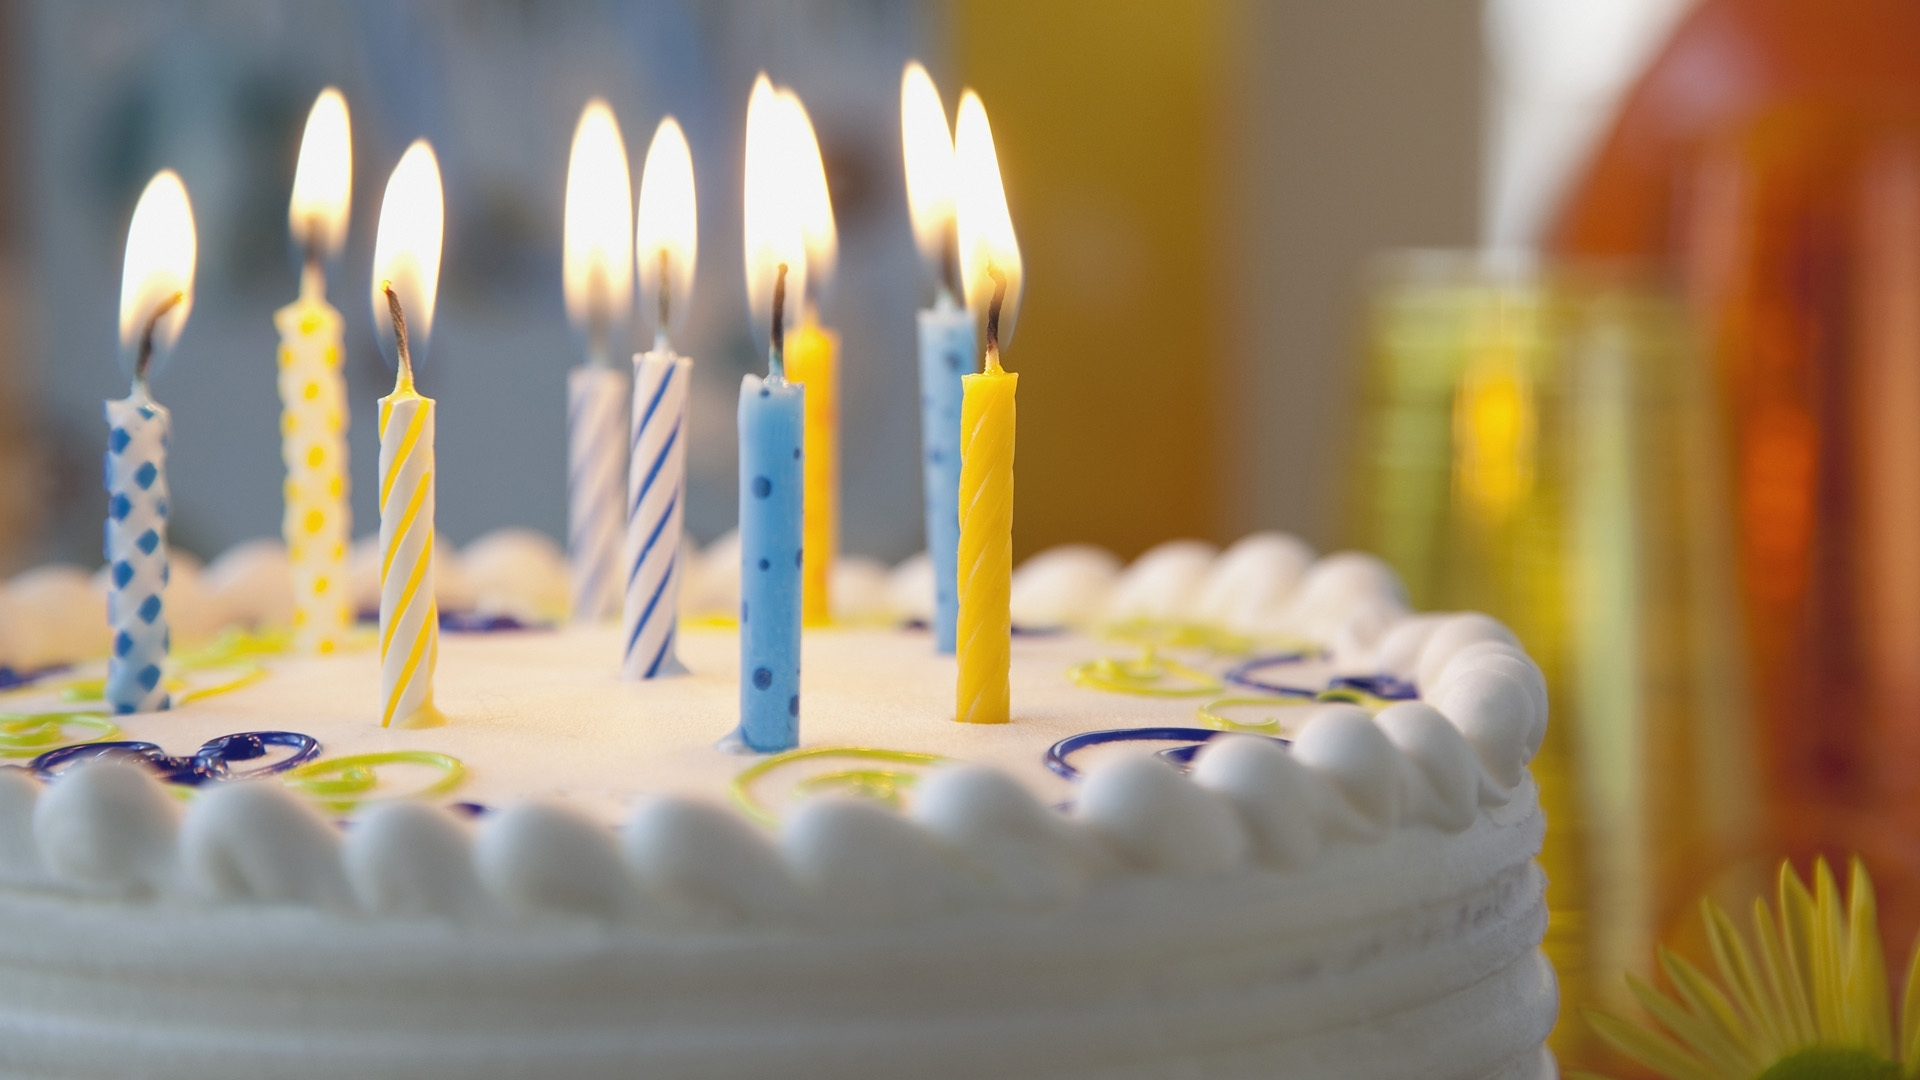 birthday wallpaper hd ; pie_candles_birthday_1371_1920x1080